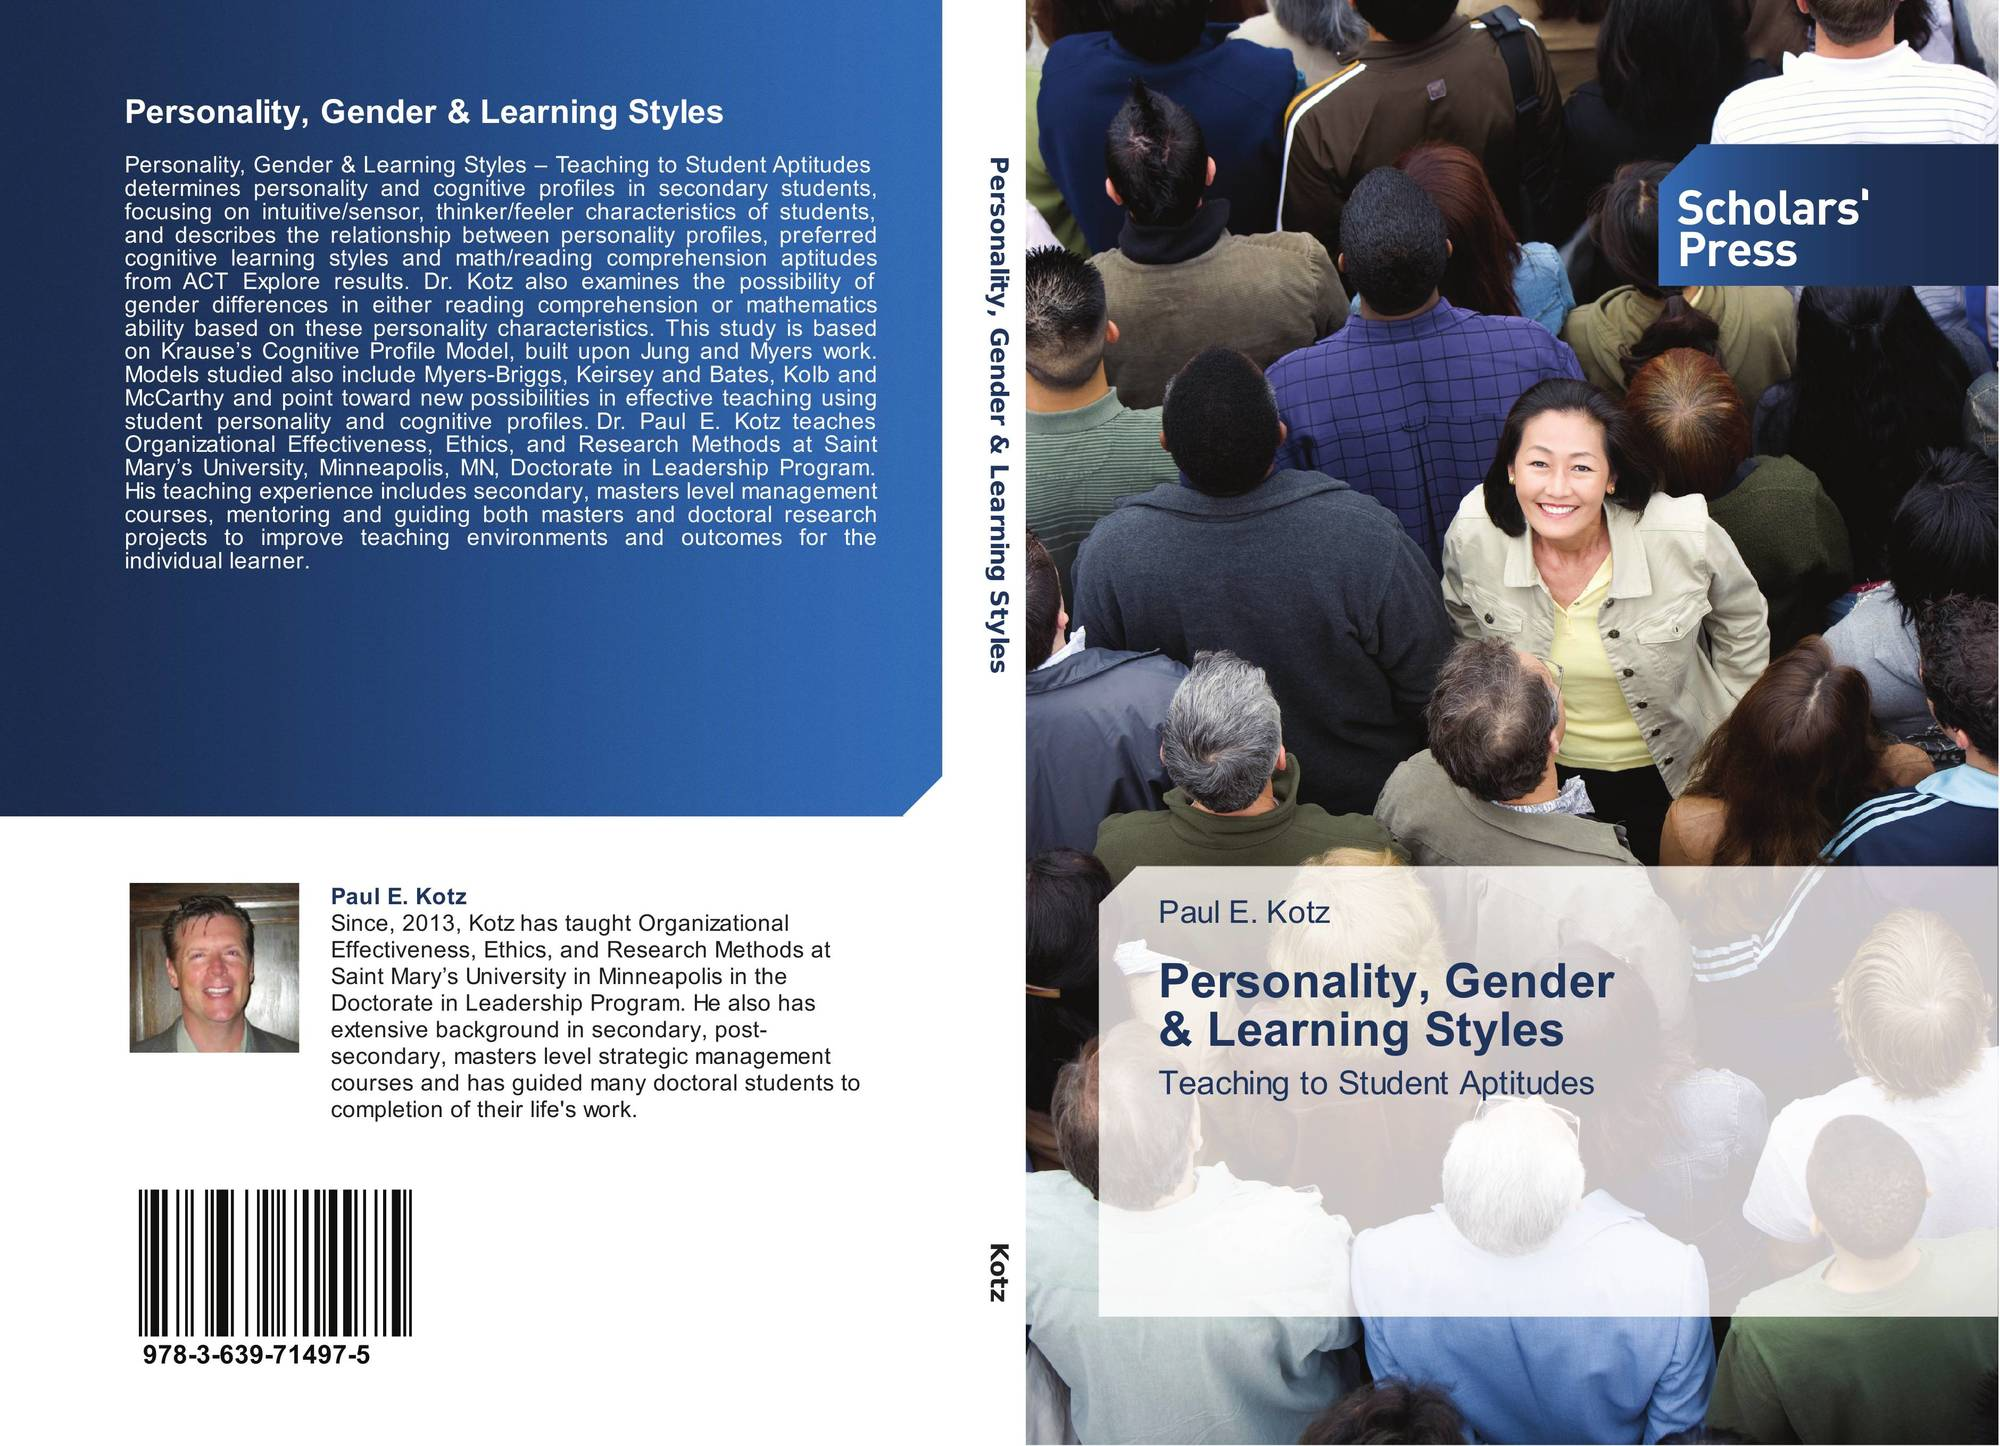 gender and personality Psychological research shows that one's sex or gender have little or no bearing on personality, cognition and leadership.